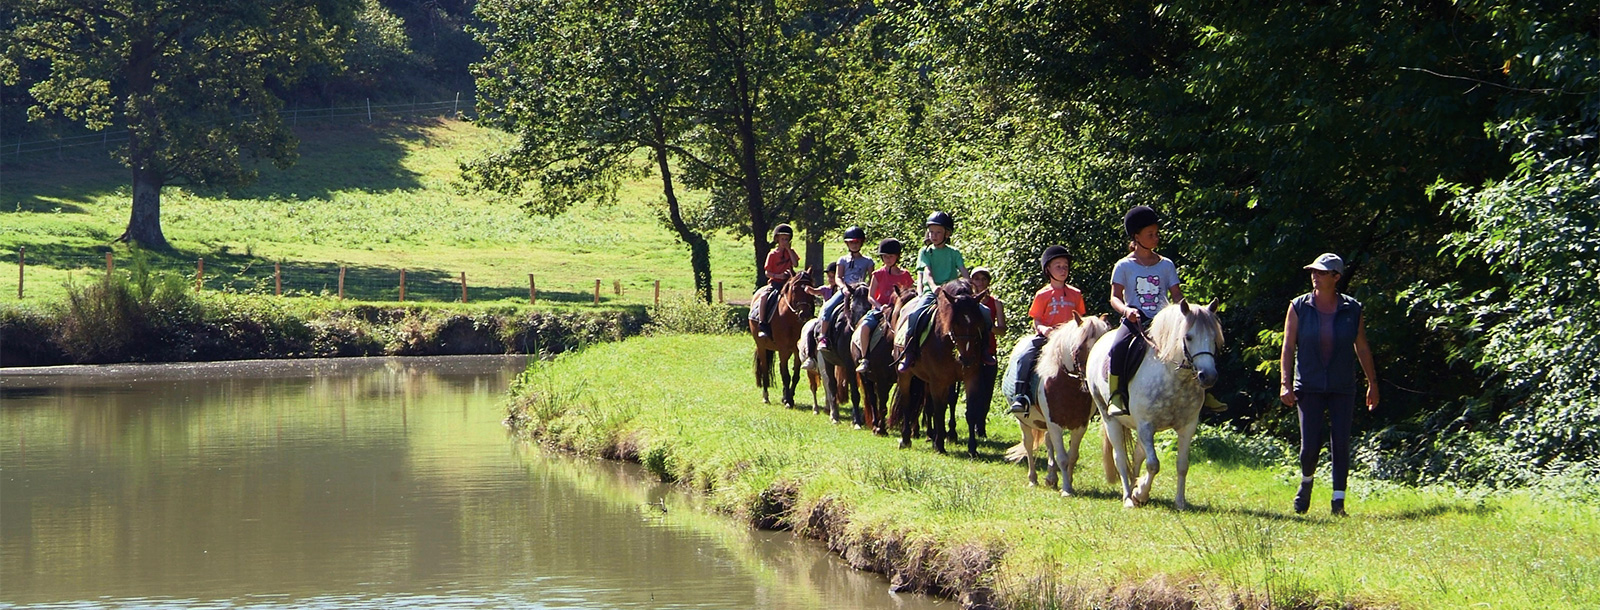 Come and live your passion for horses in Mané Guernehué riding school